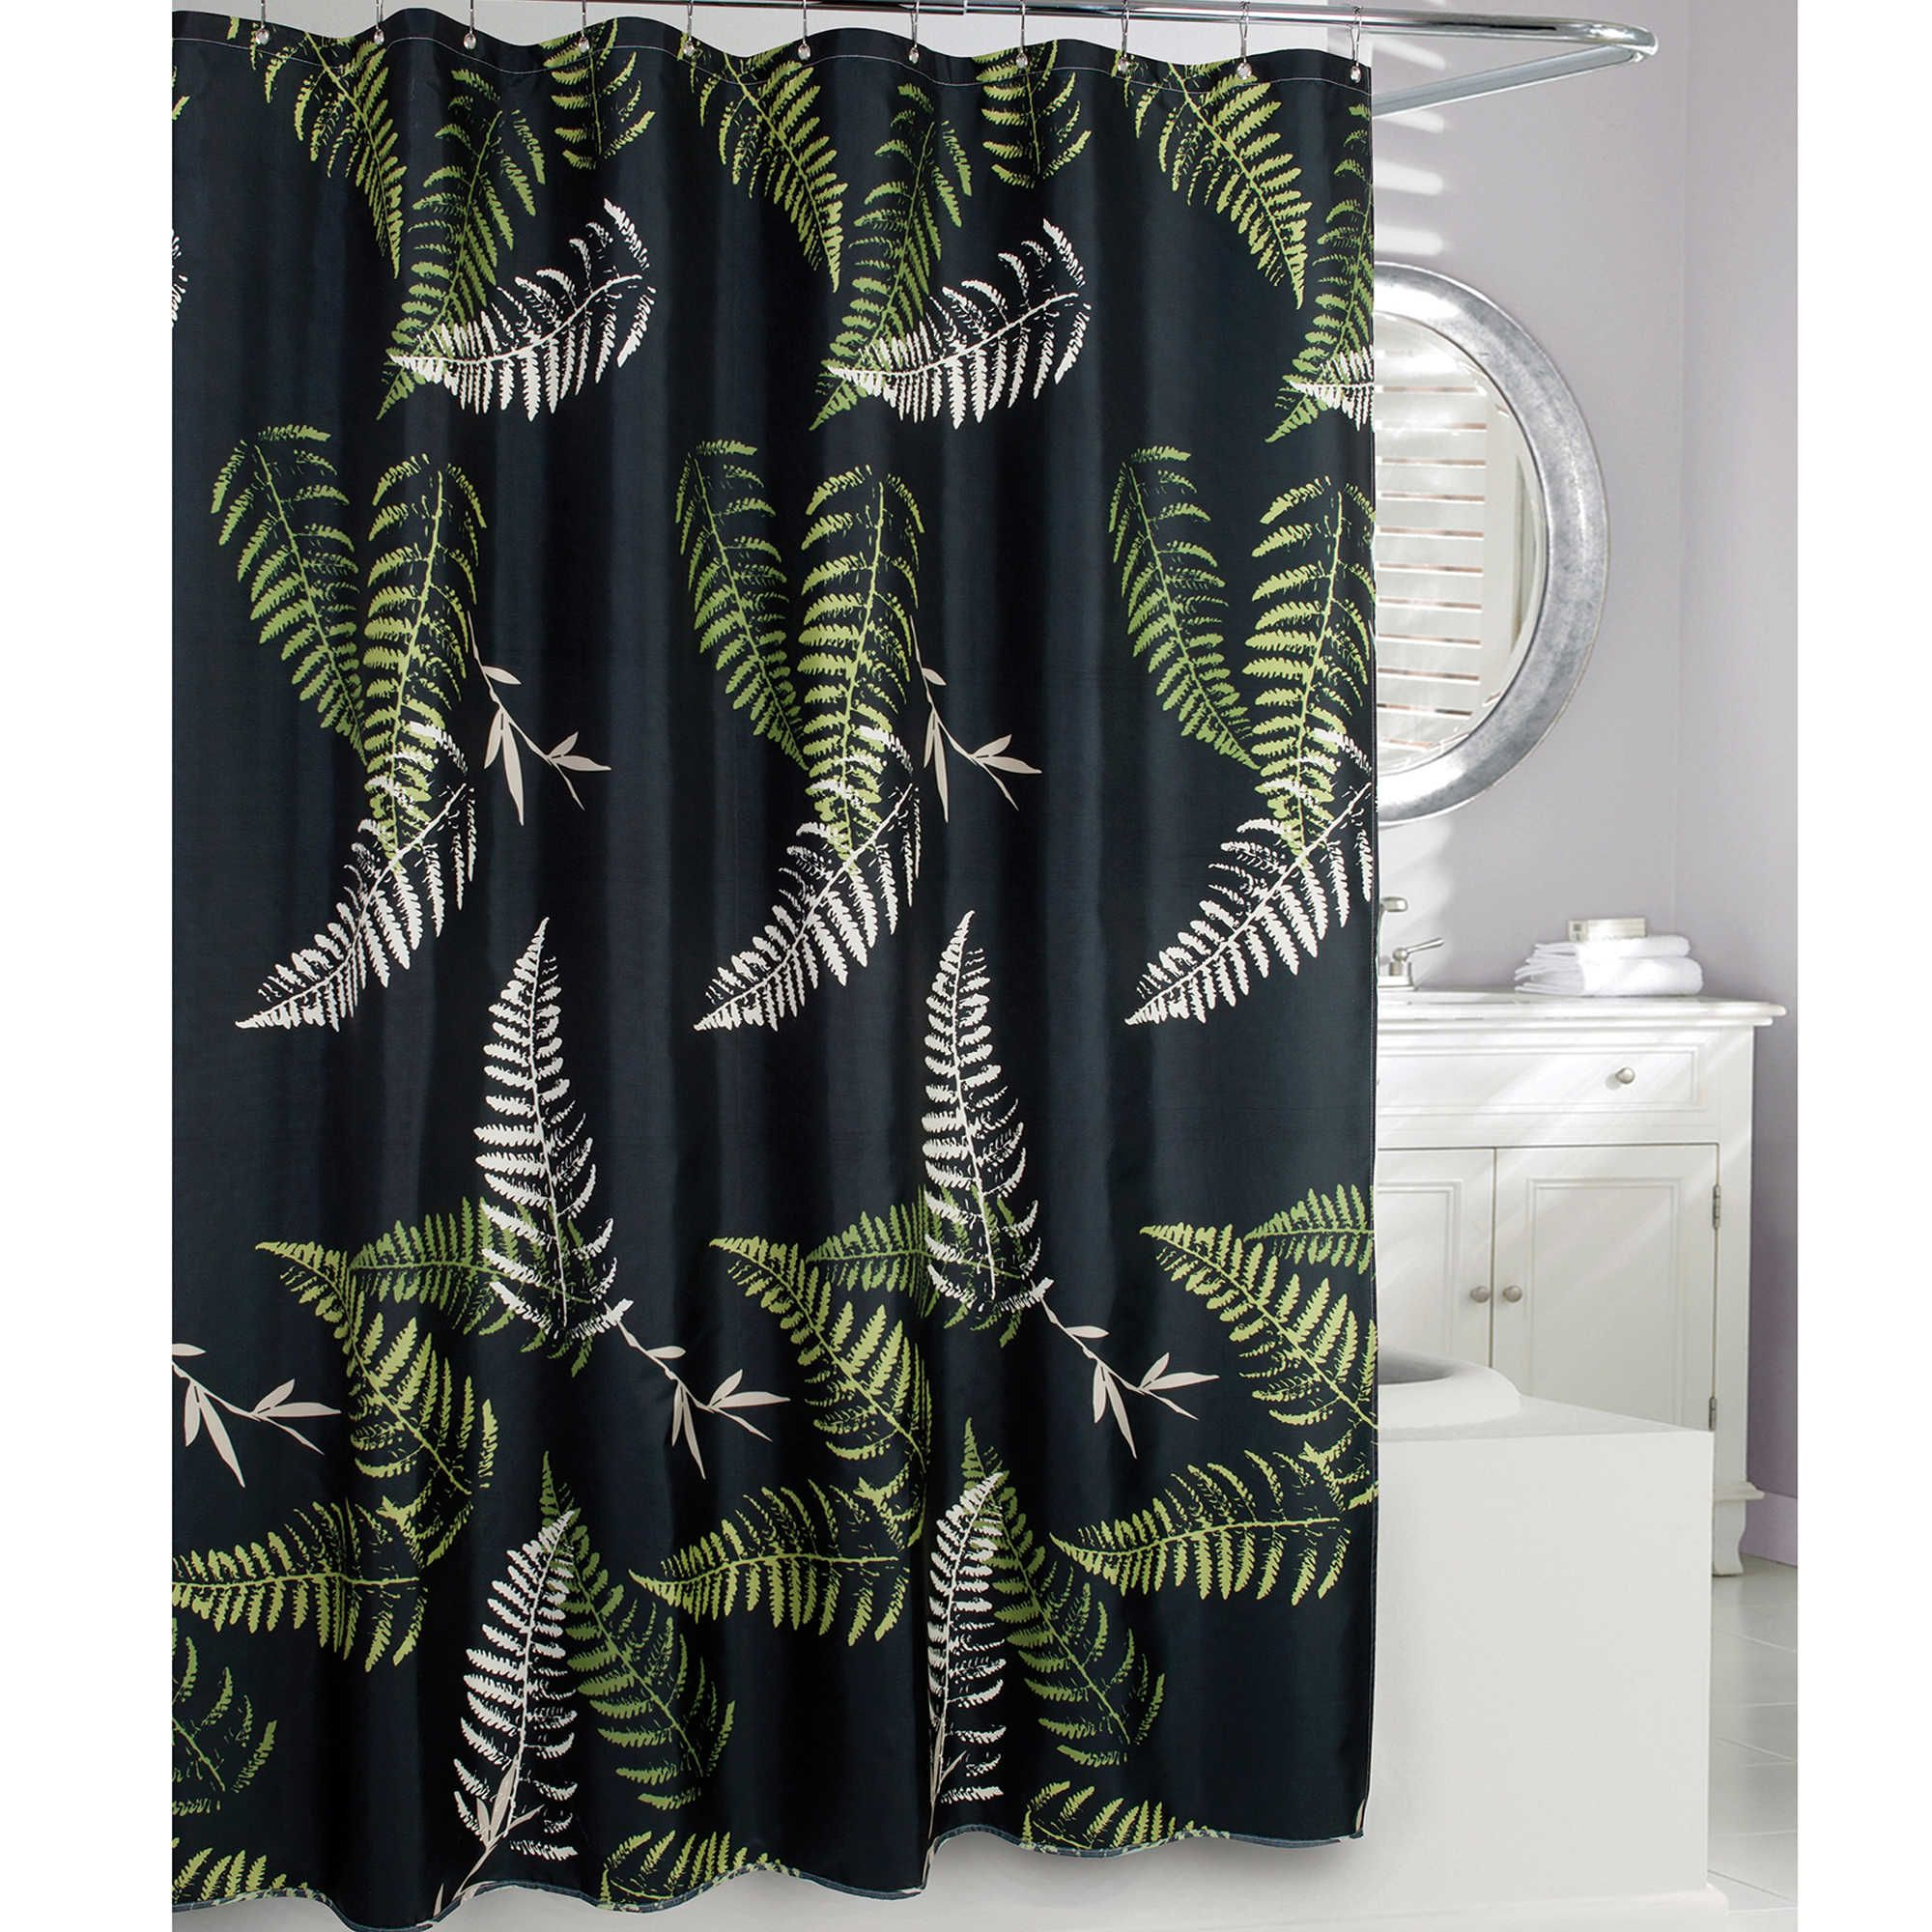 Moda At Home Fern Frond Fabric Shower Curtain Fabric Shower Curtains Shower Curtain Curtains